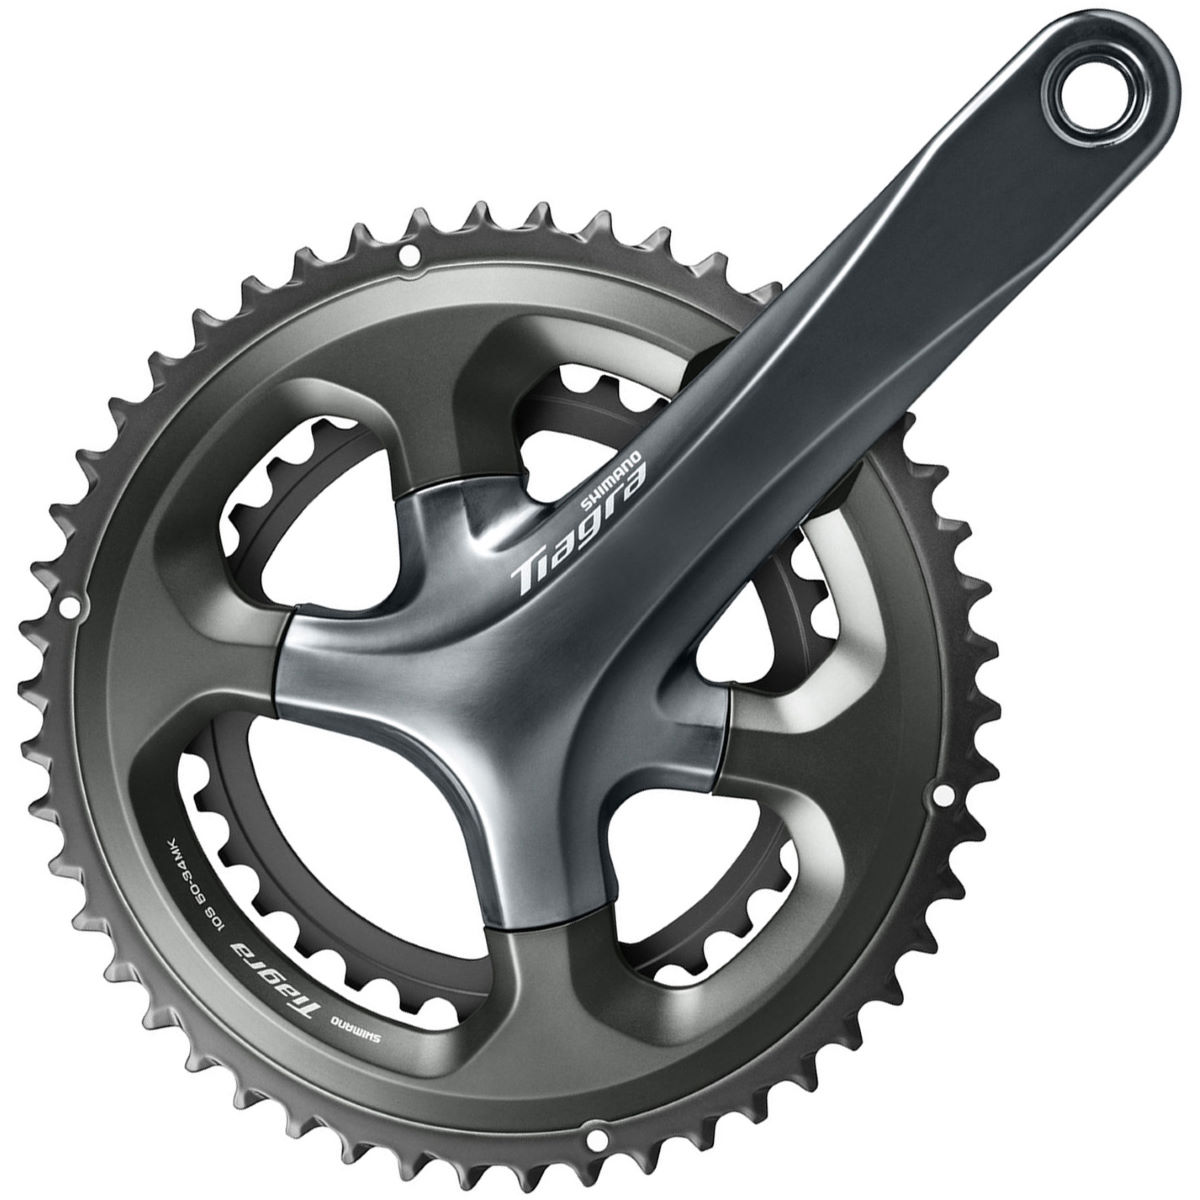 Shimano Tiagra 4700 10 Speed Chainset - 172.5 50.34 172.5mm Grey